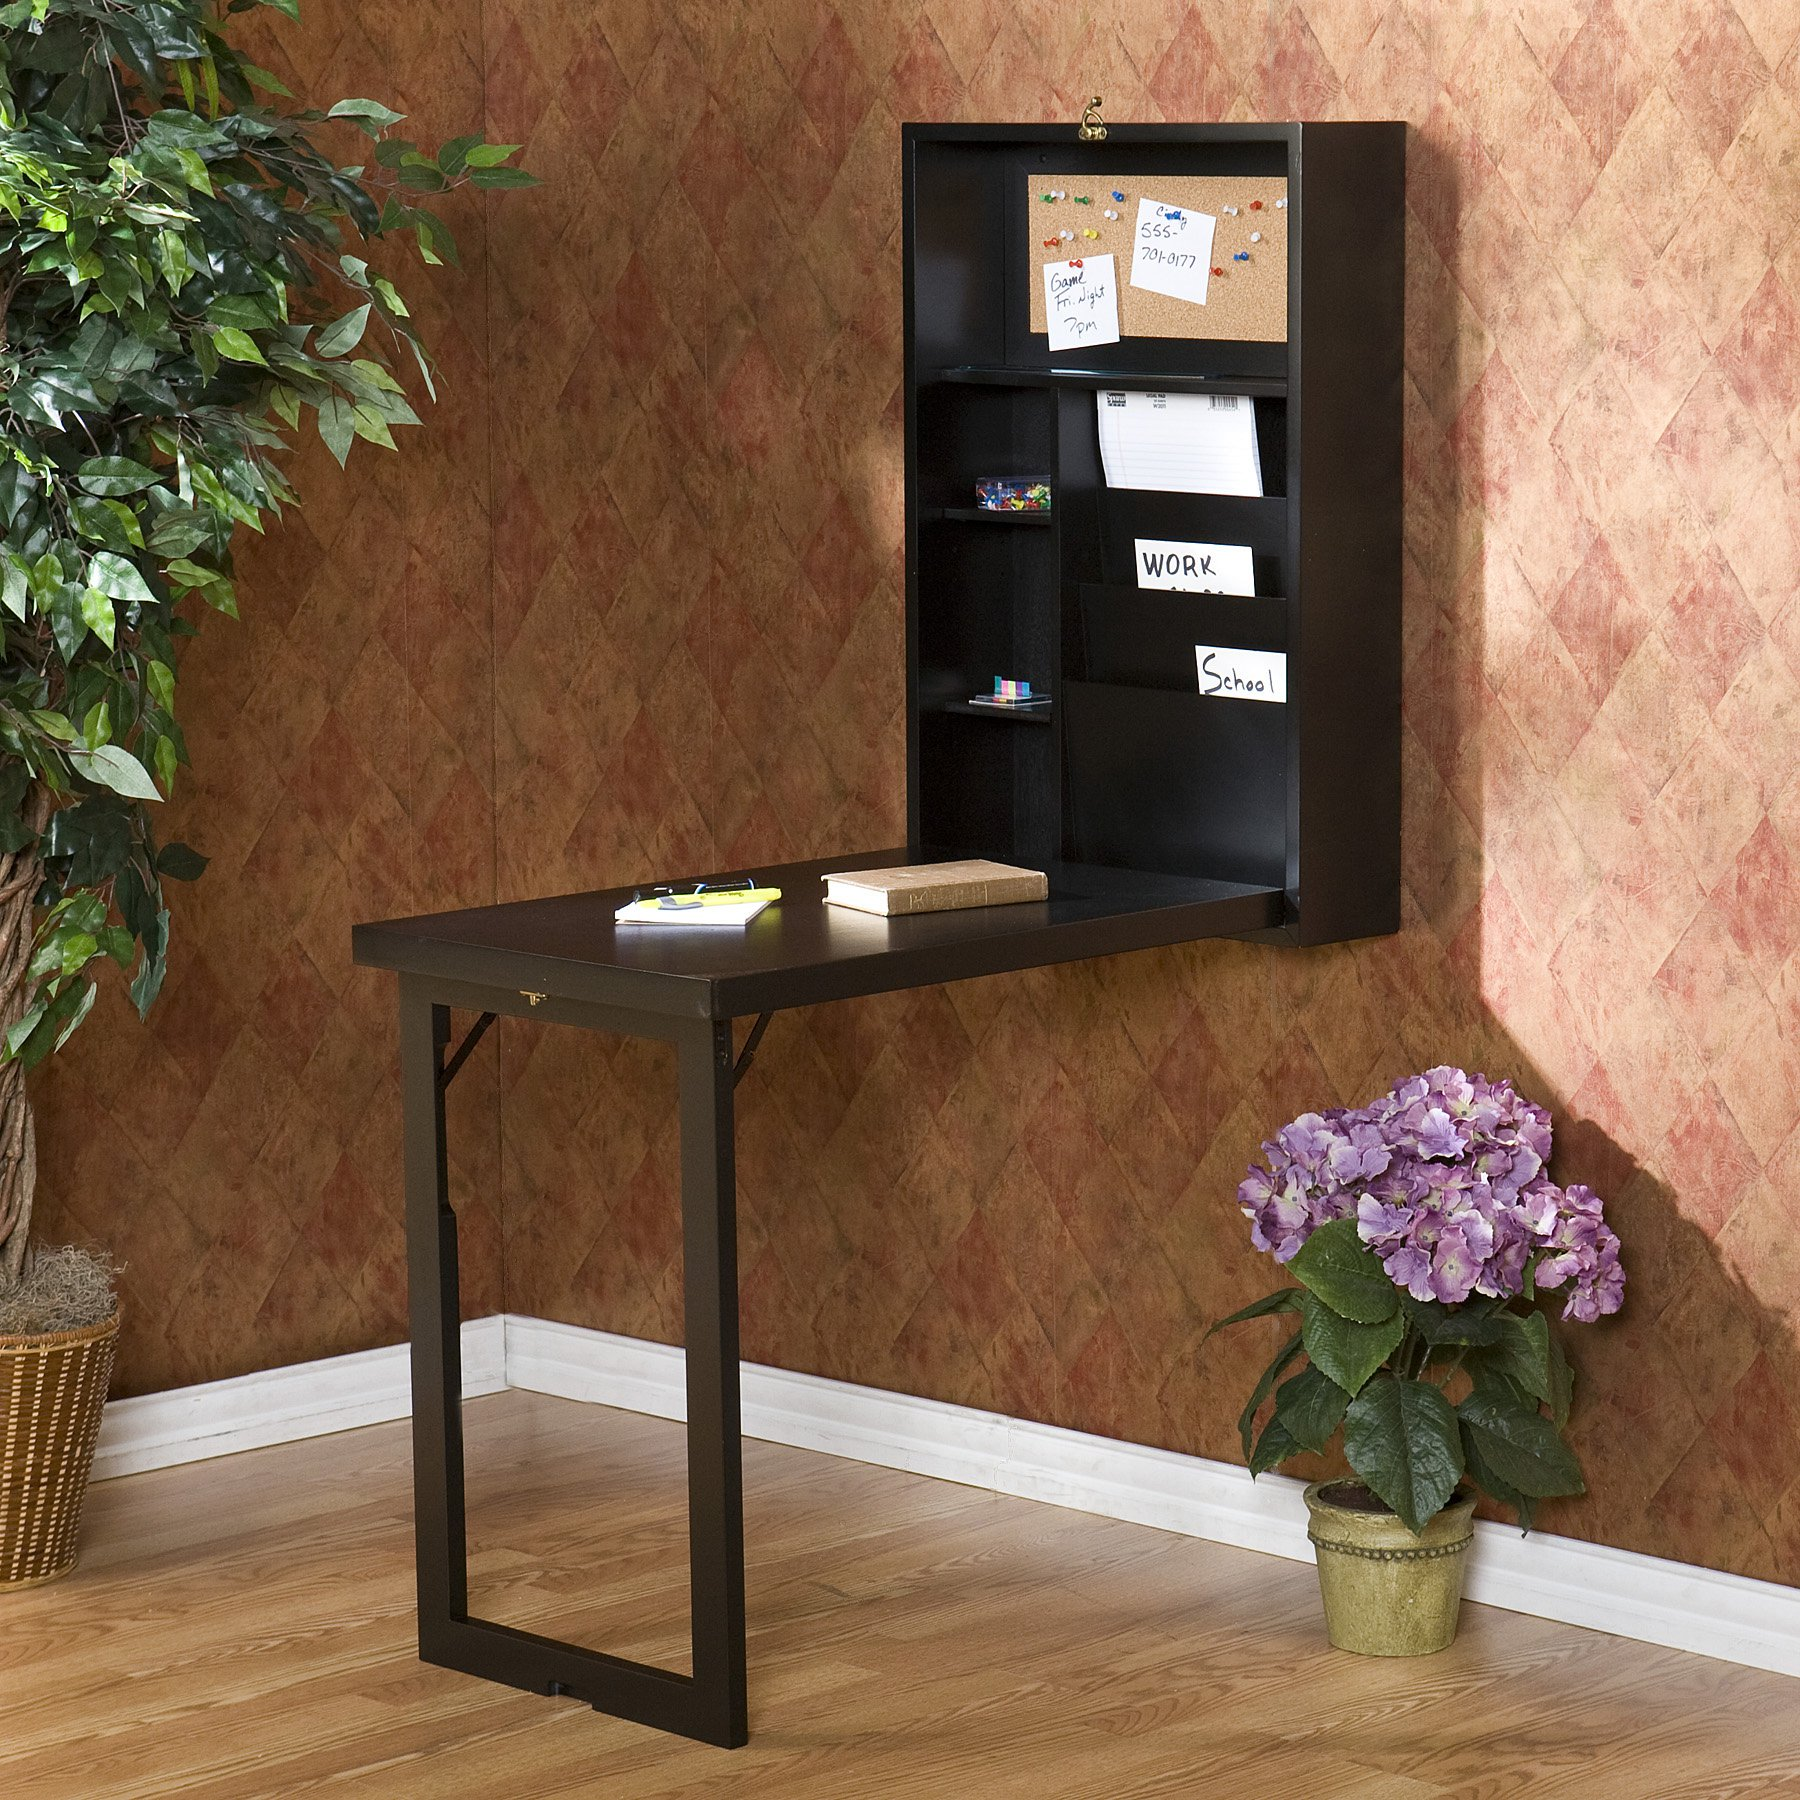 Southern Enterprises Wall Mounted Fold Out Convertible Desk - Black